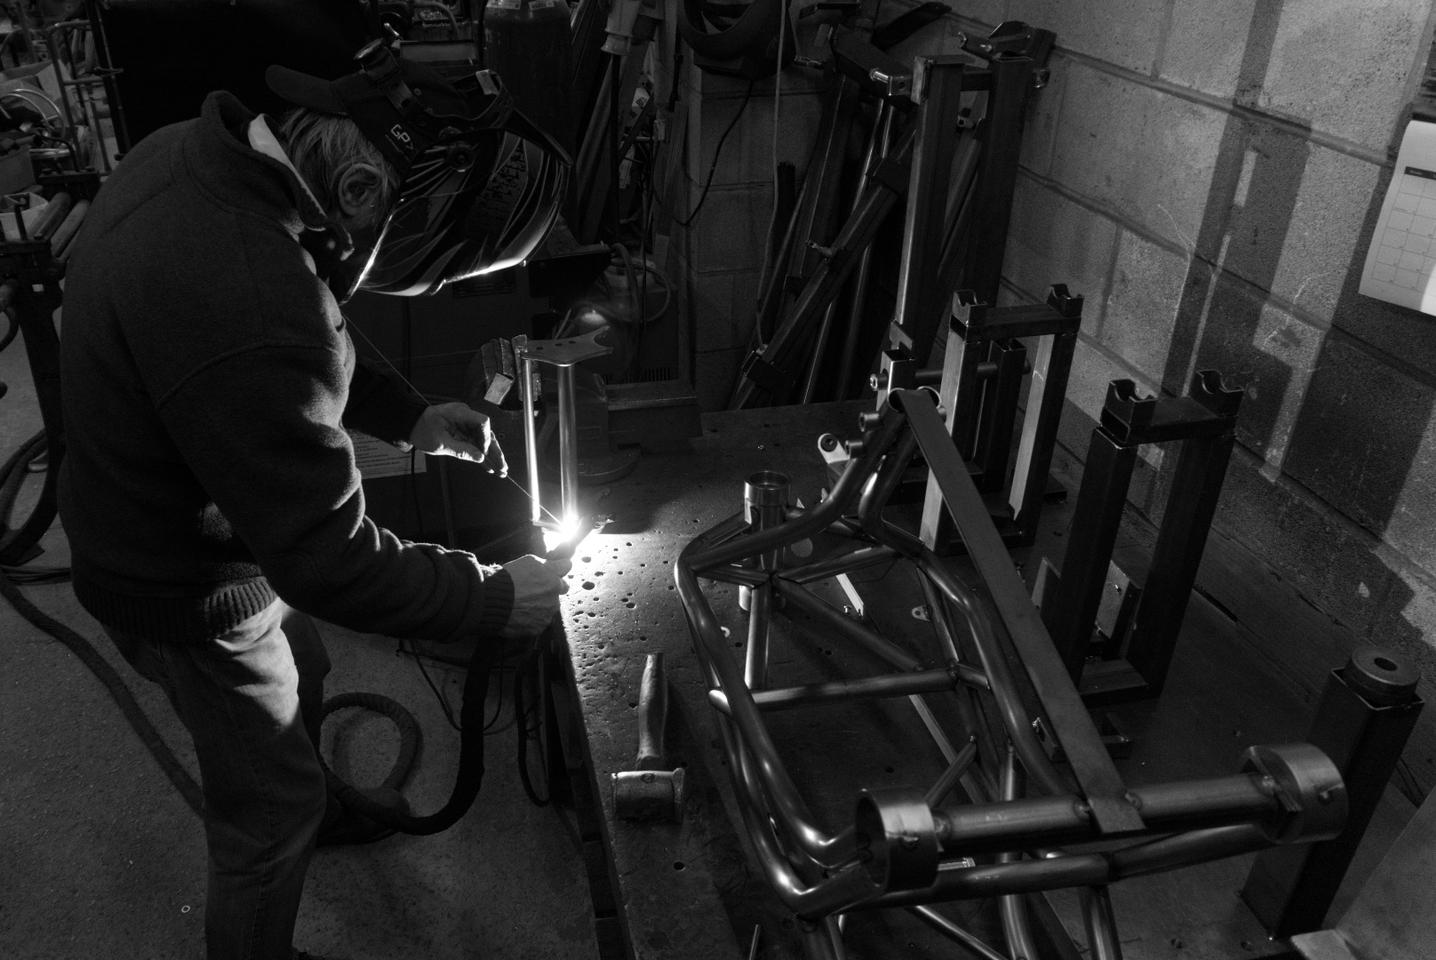 Welding the trellis frame of the CCM Spitfire